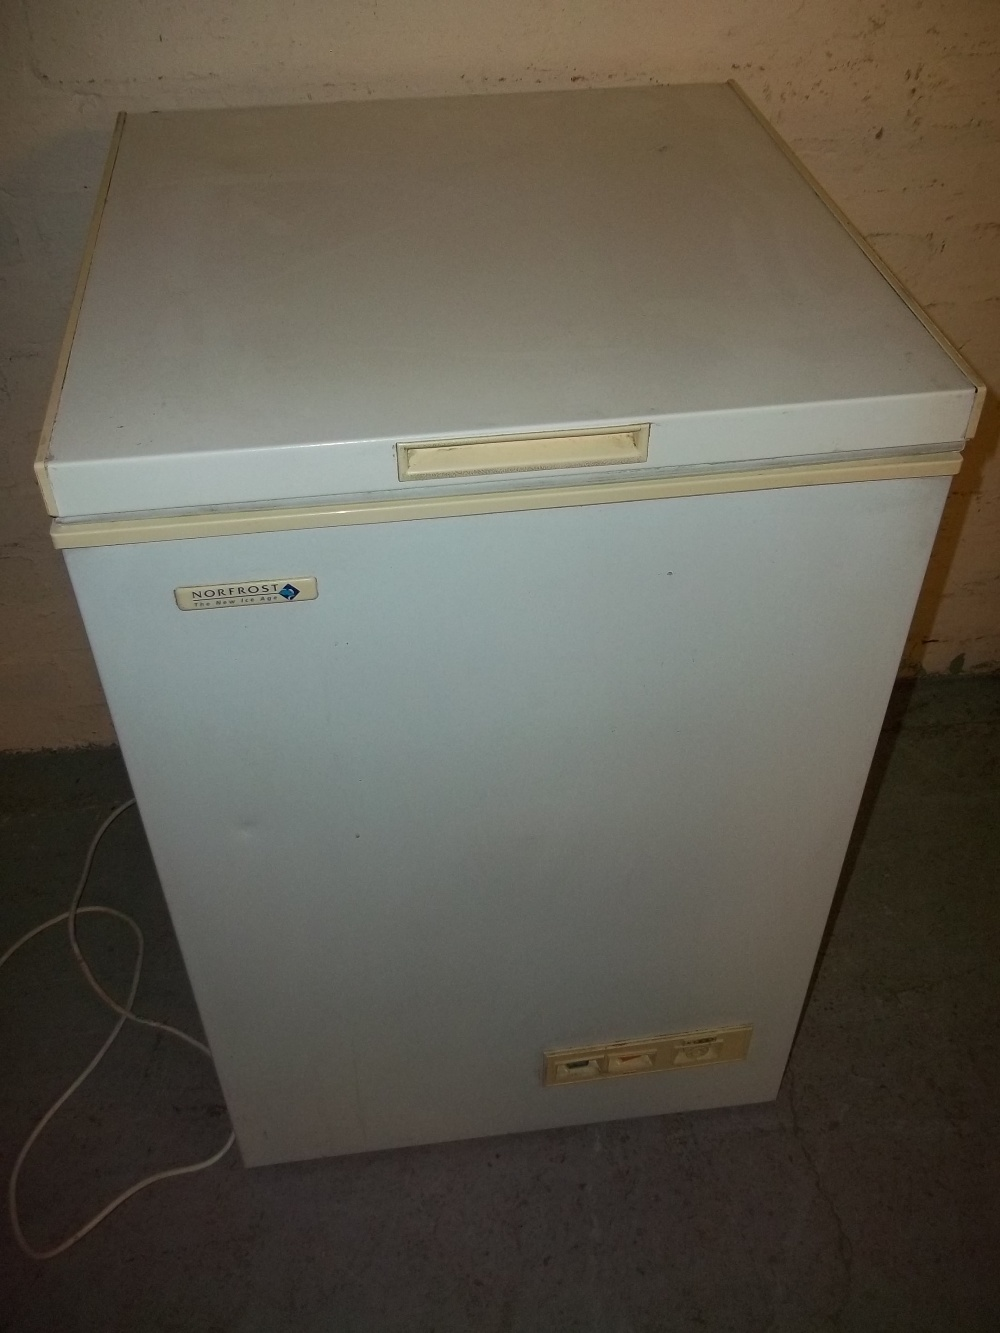 A NORFROST CHEST FREEZER